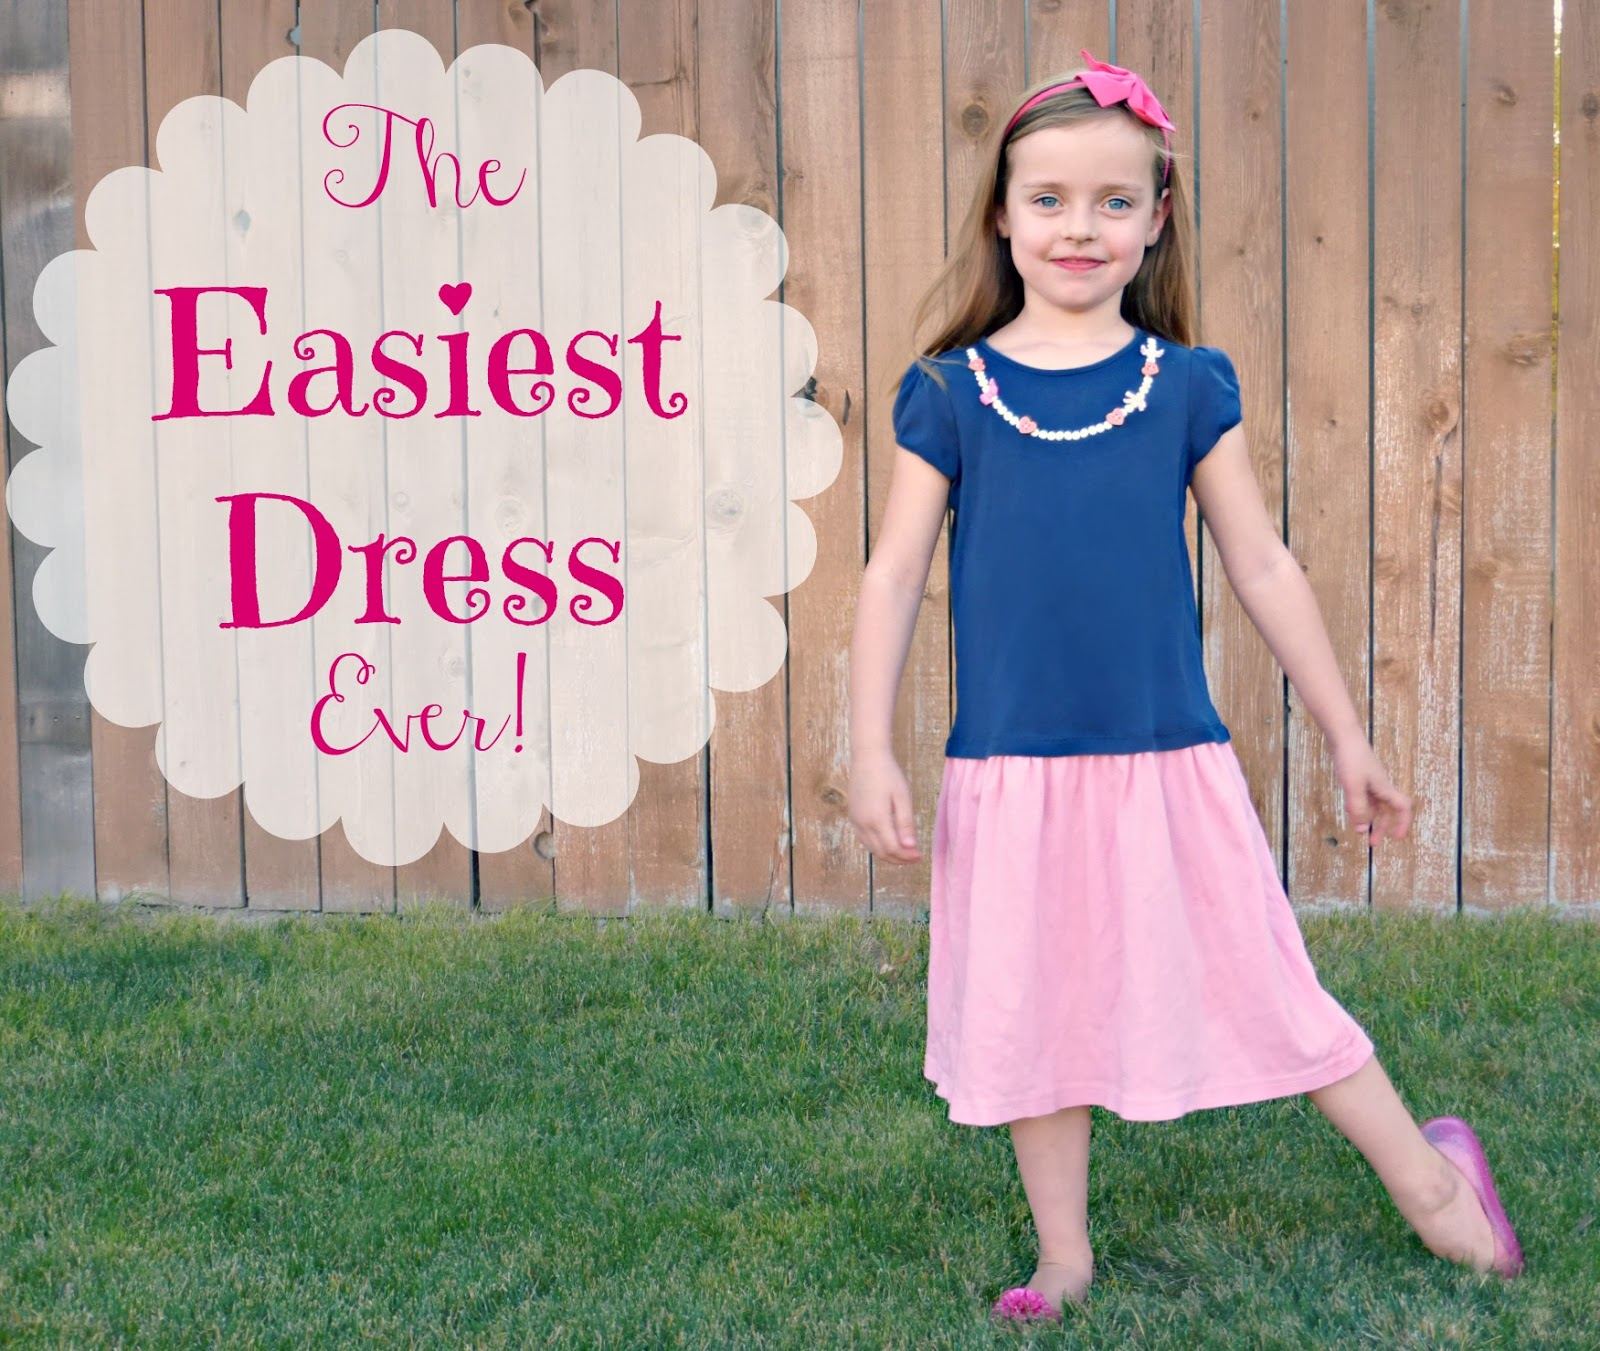 http://www.domesticblisssquared.com/2014/03/the-easiest-kids-dress-ever-refashion.html